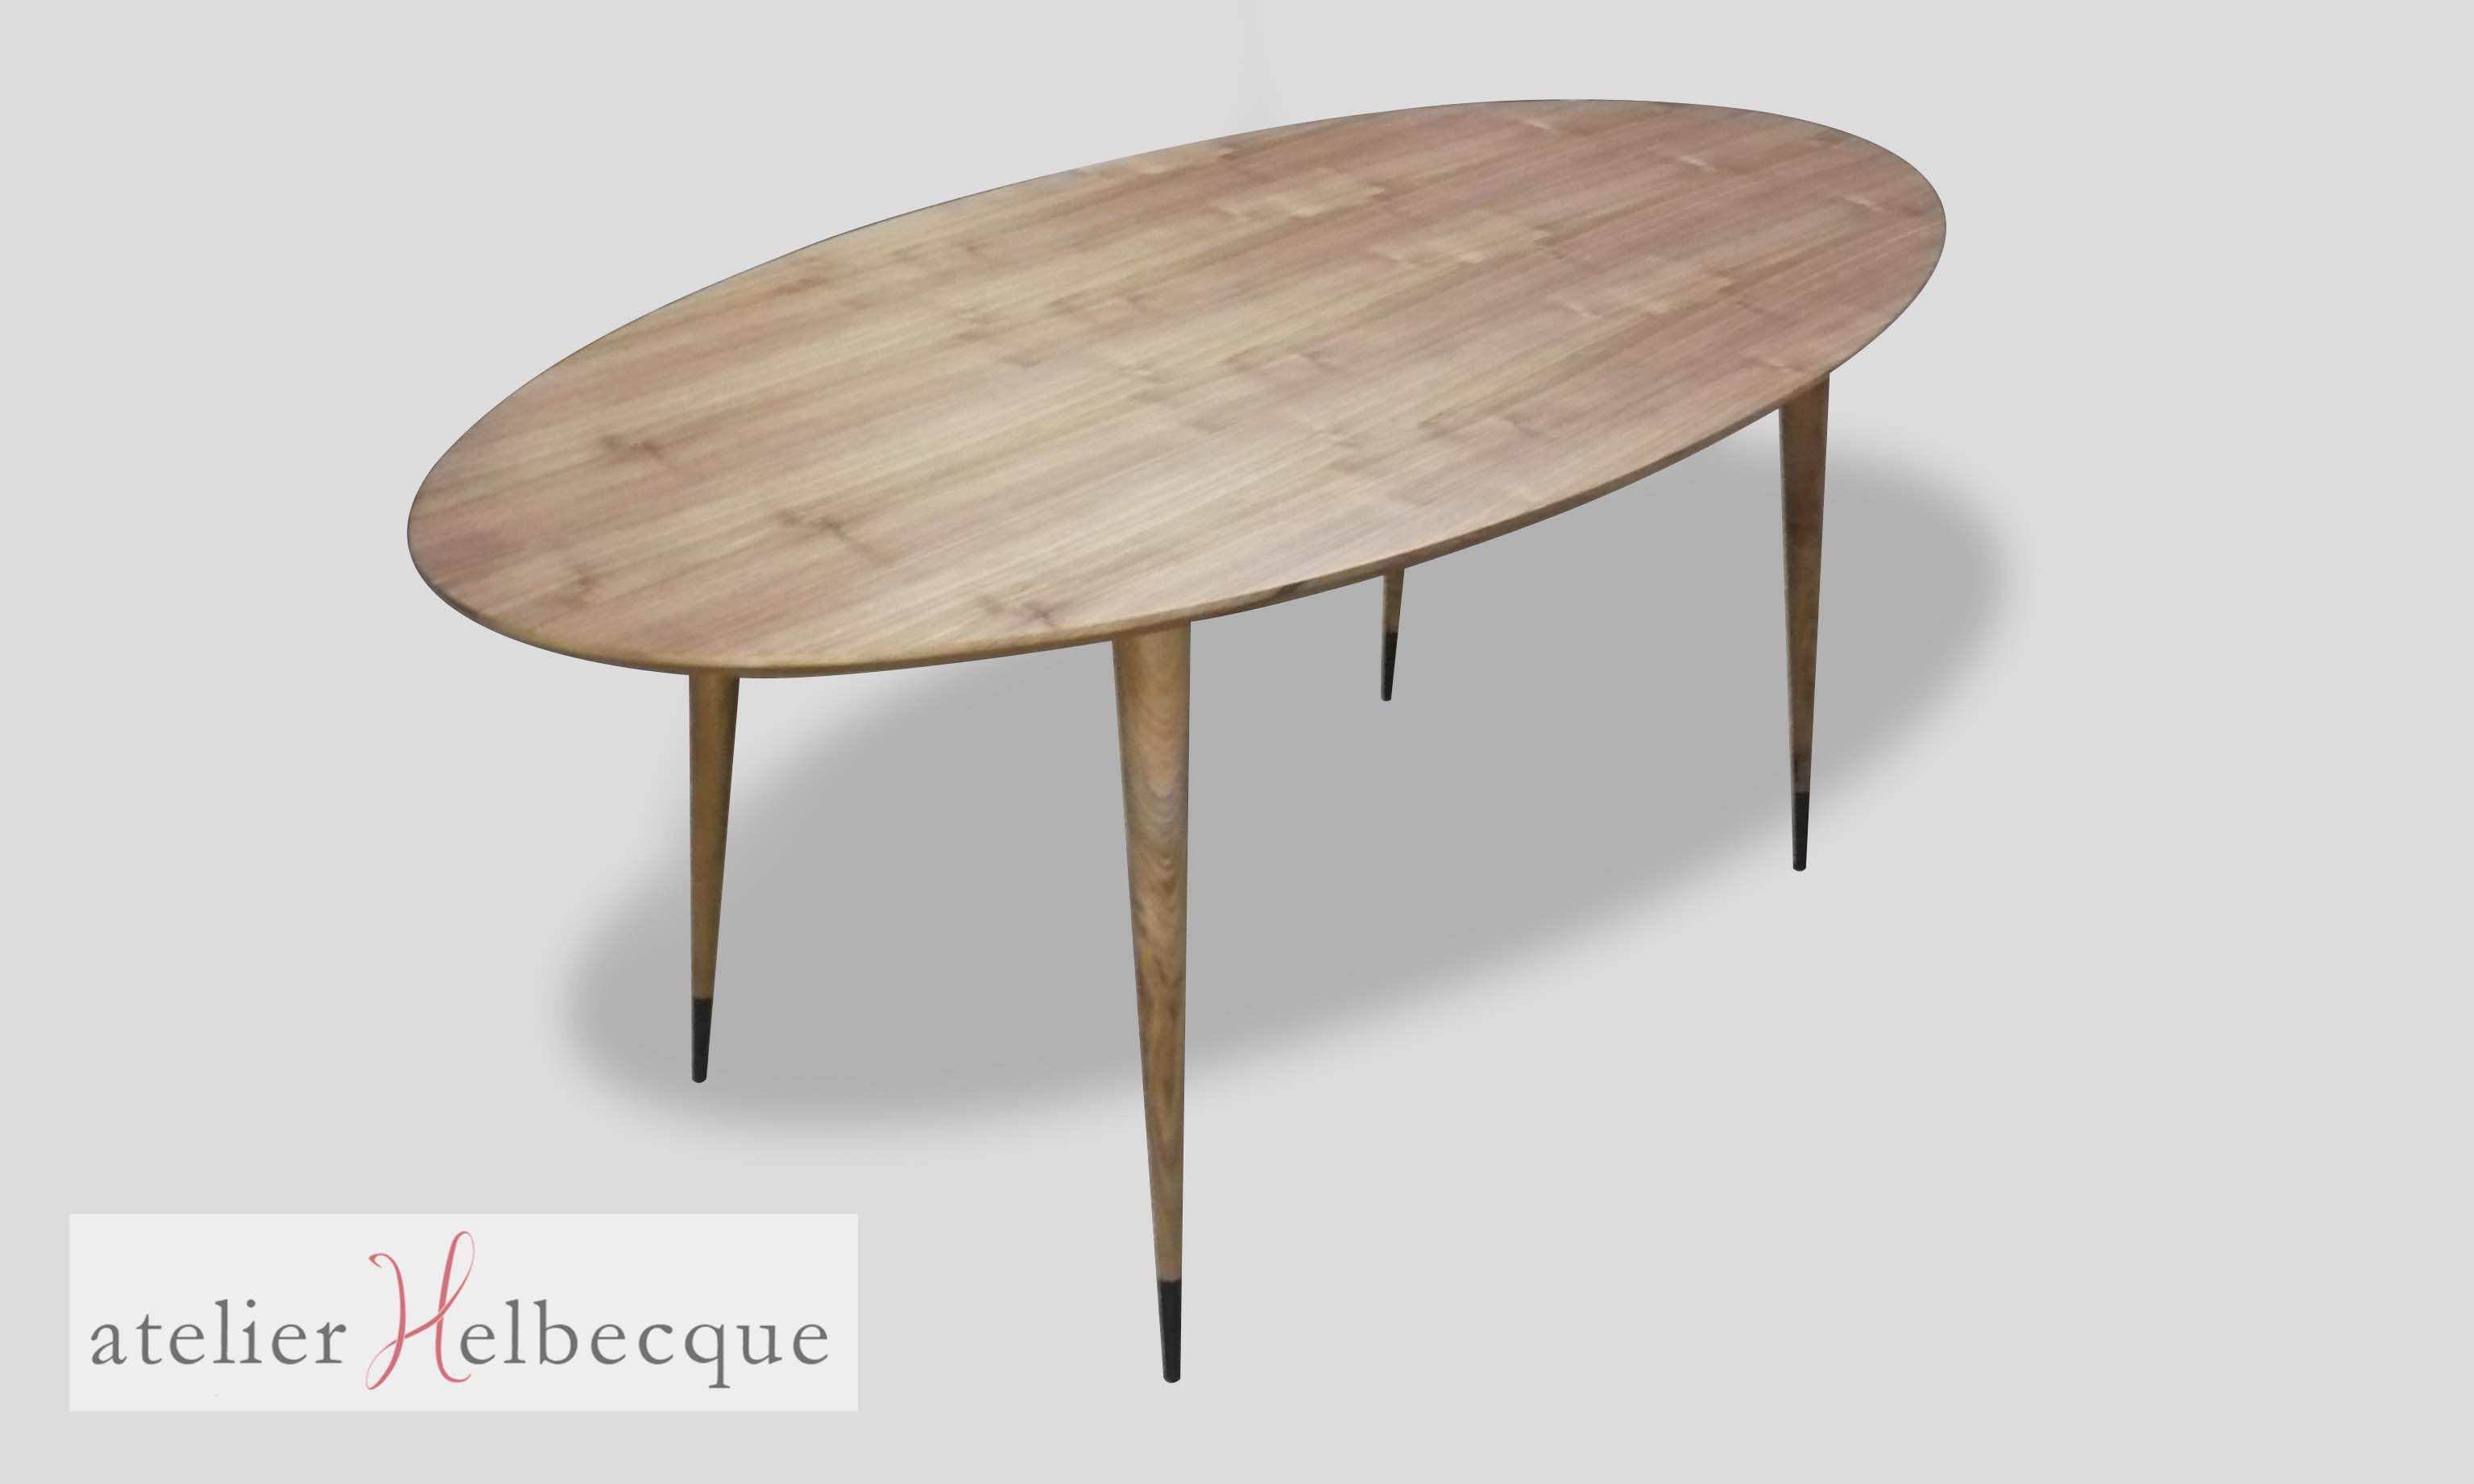 B niste cr ateur fabricant de table contemporaine atelier helbecque 94 ile - Table de salon ovale ...